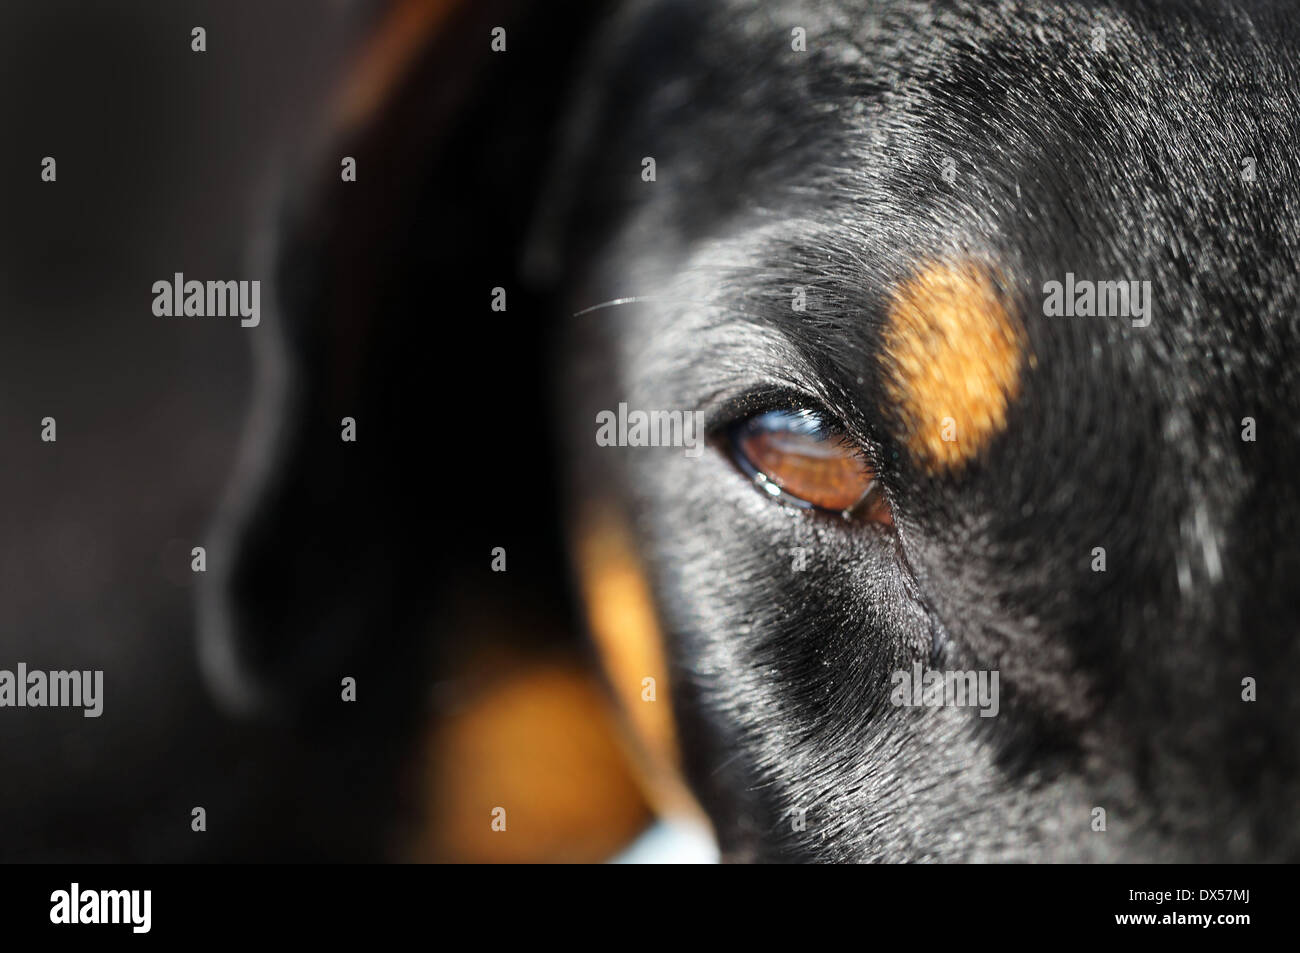 close-up view into an eye of a doberman dog - Stock Image